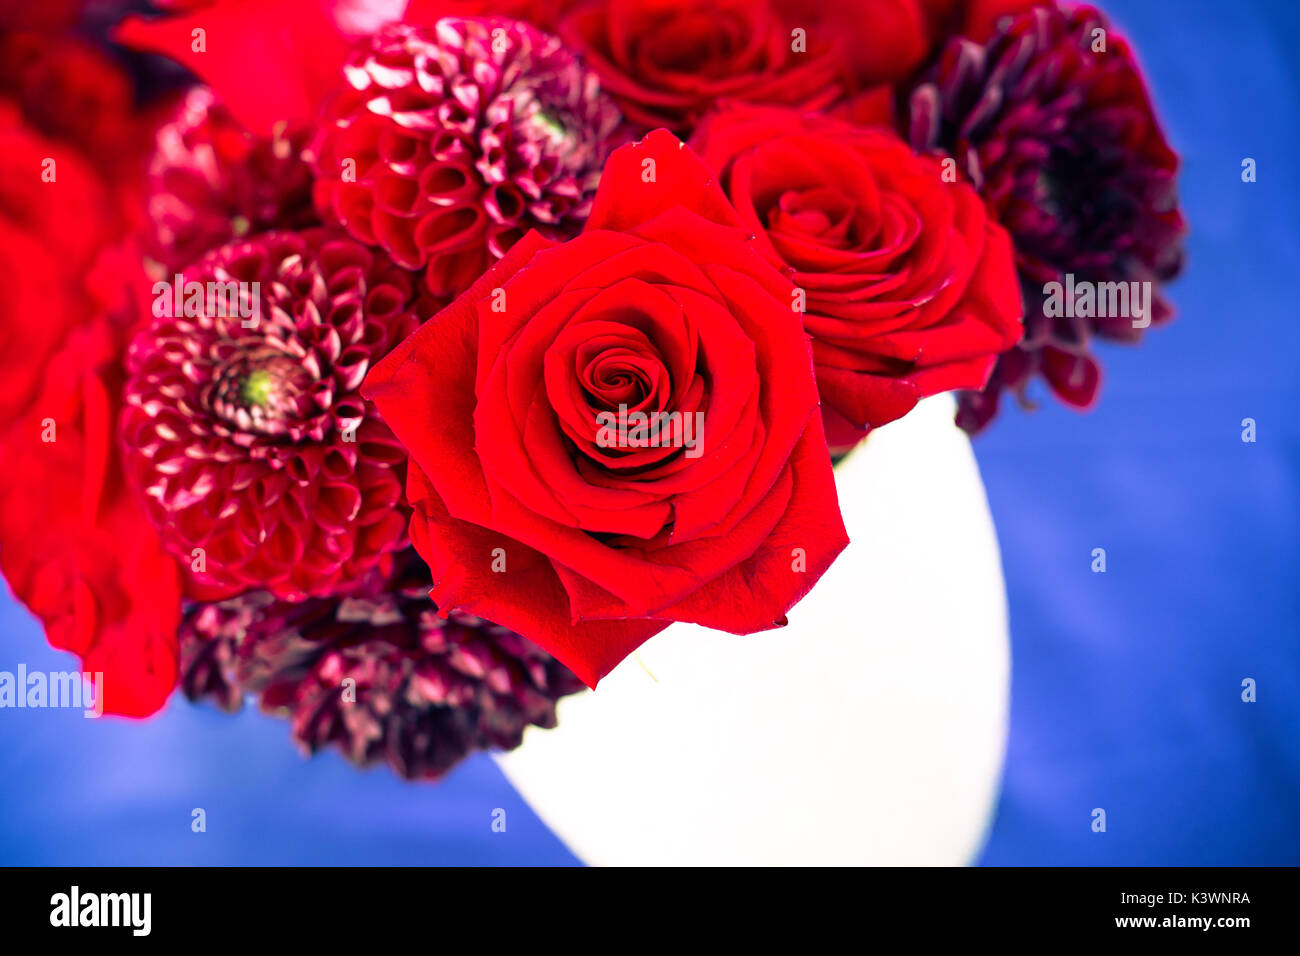 Roses And Red Flowers In Bouquet In Red White And Blue Color Palette